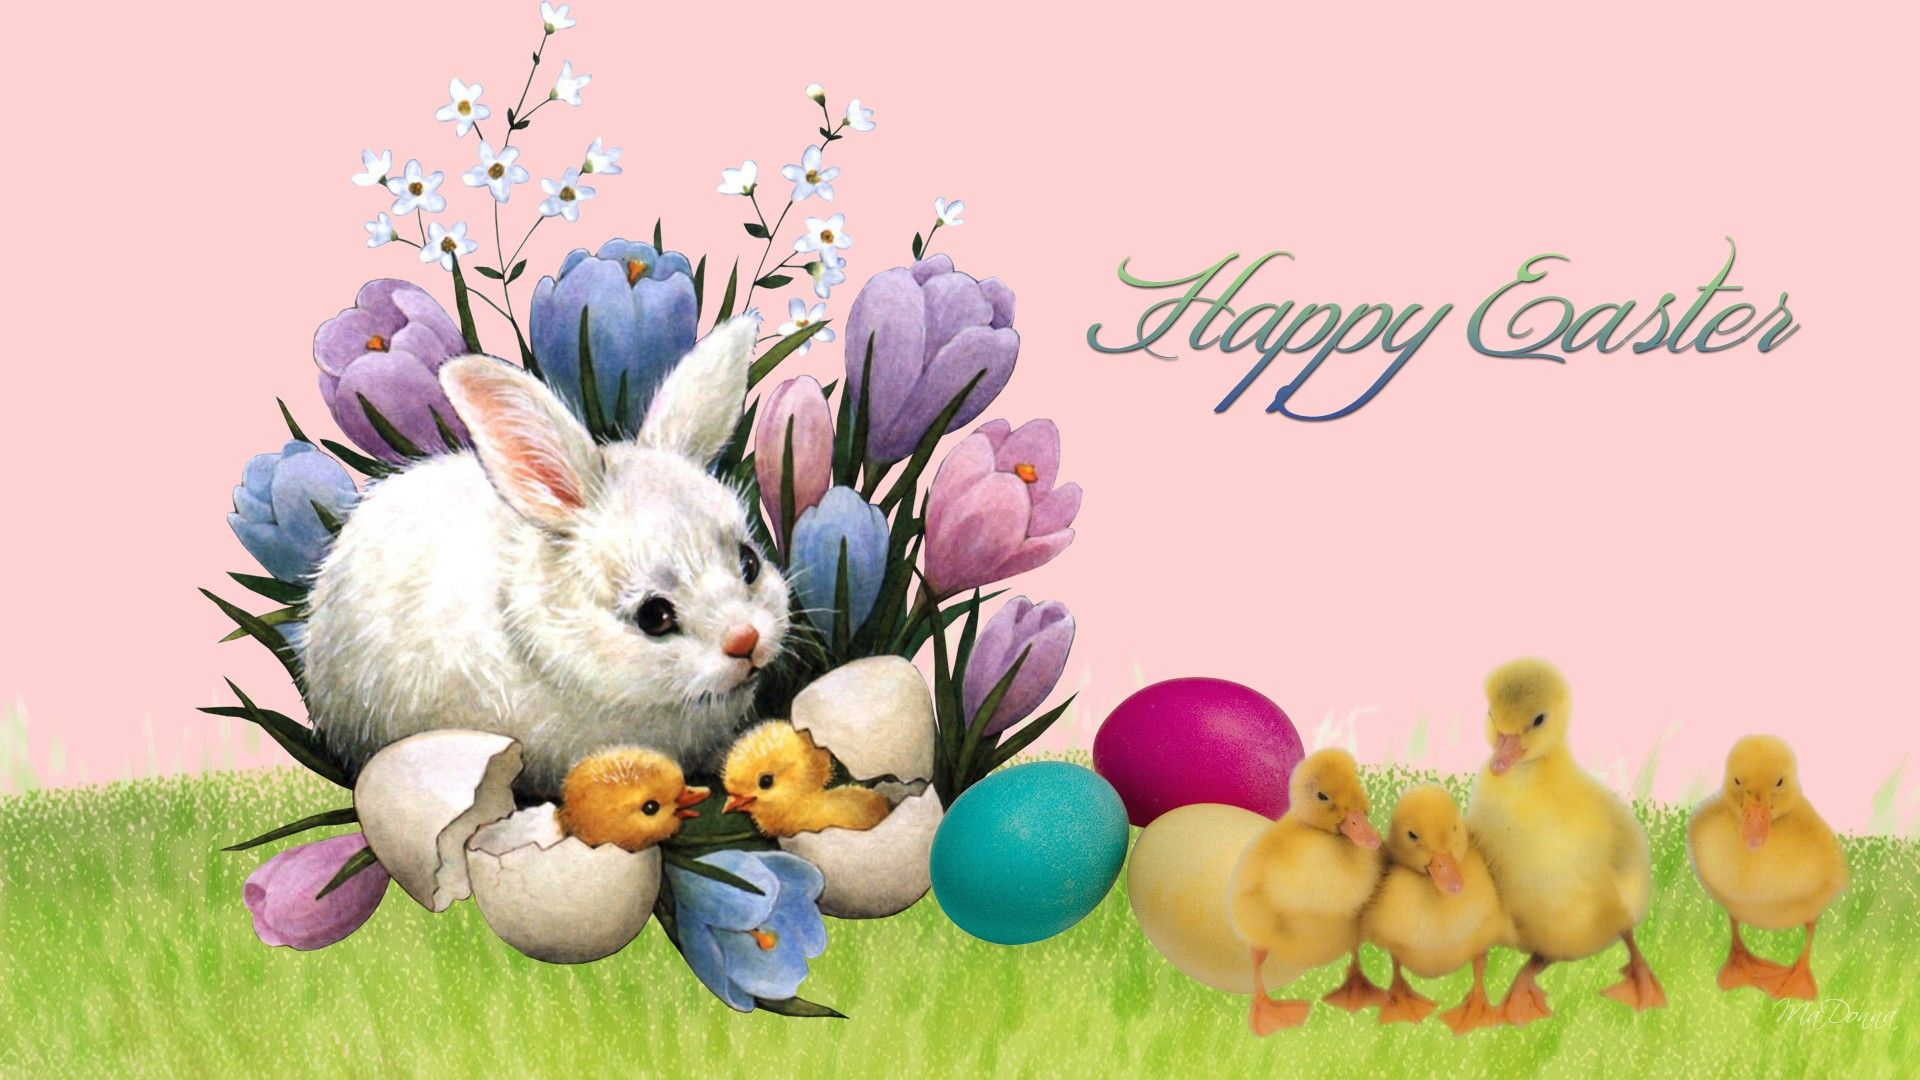 Easter Bunny HD Wallpapers Free